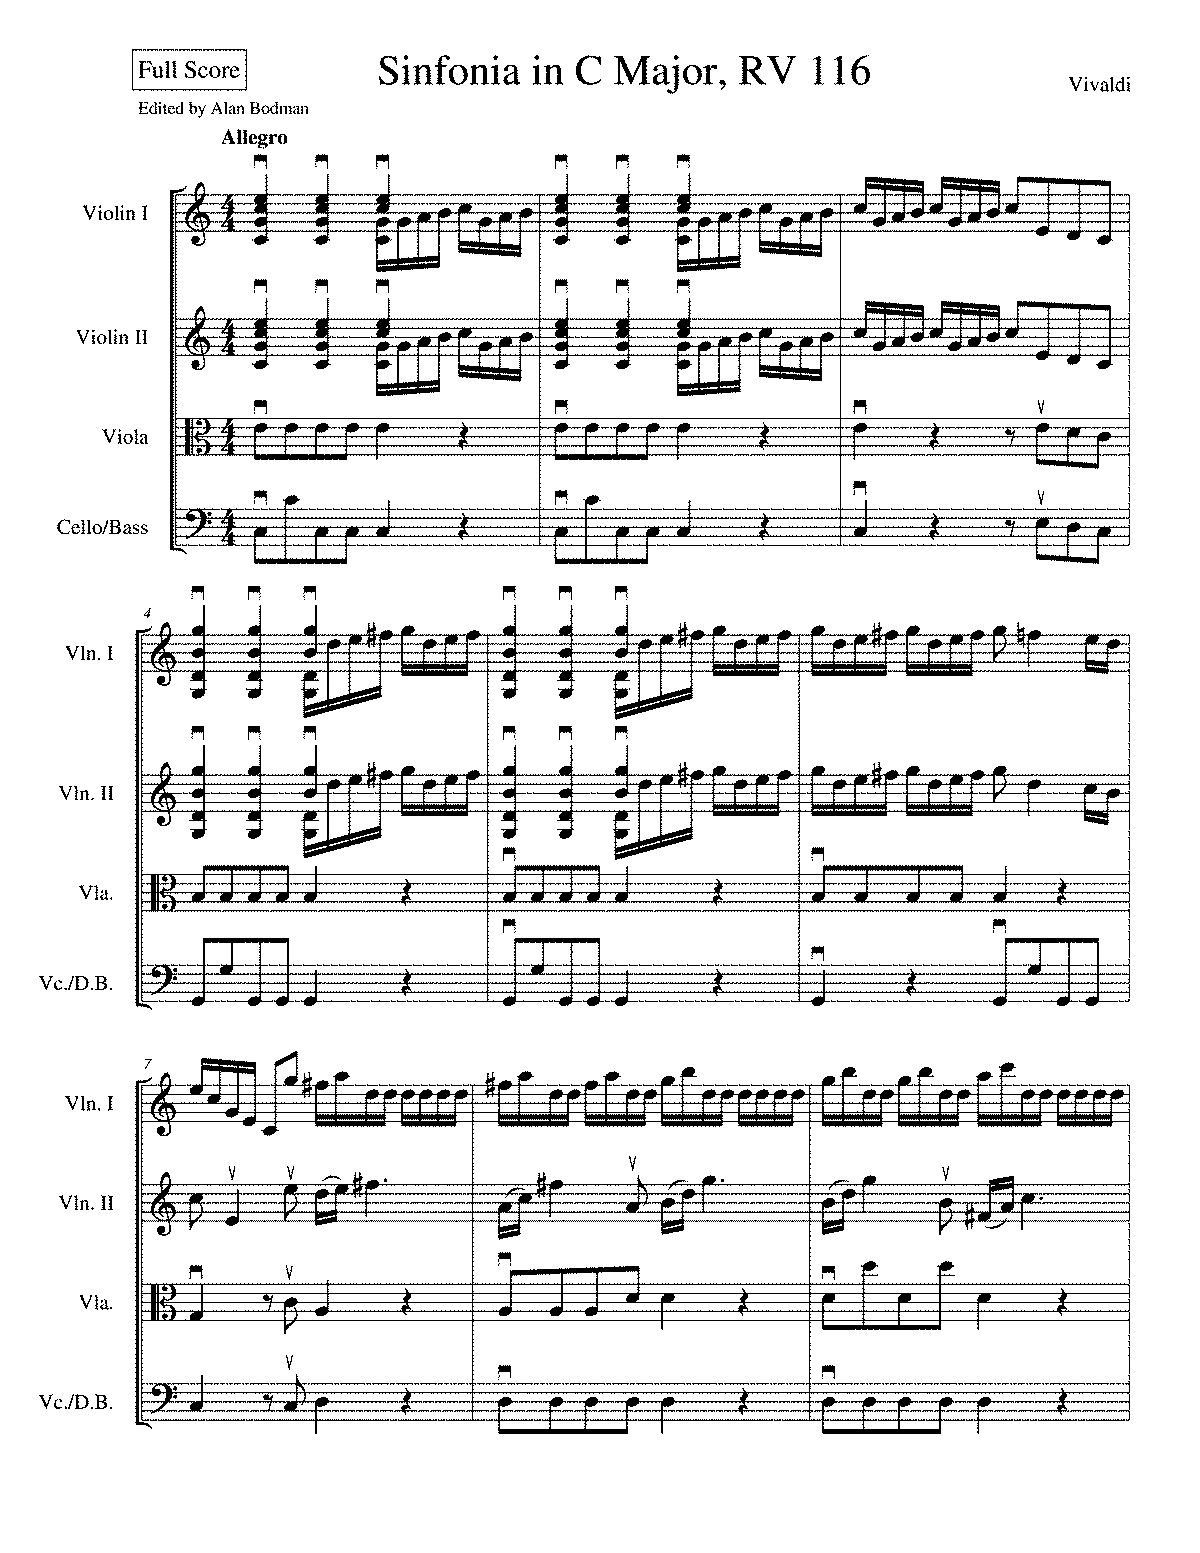 PMLP91536-Vivaldi Sinfonia in C Major RV 116-Score.pdf